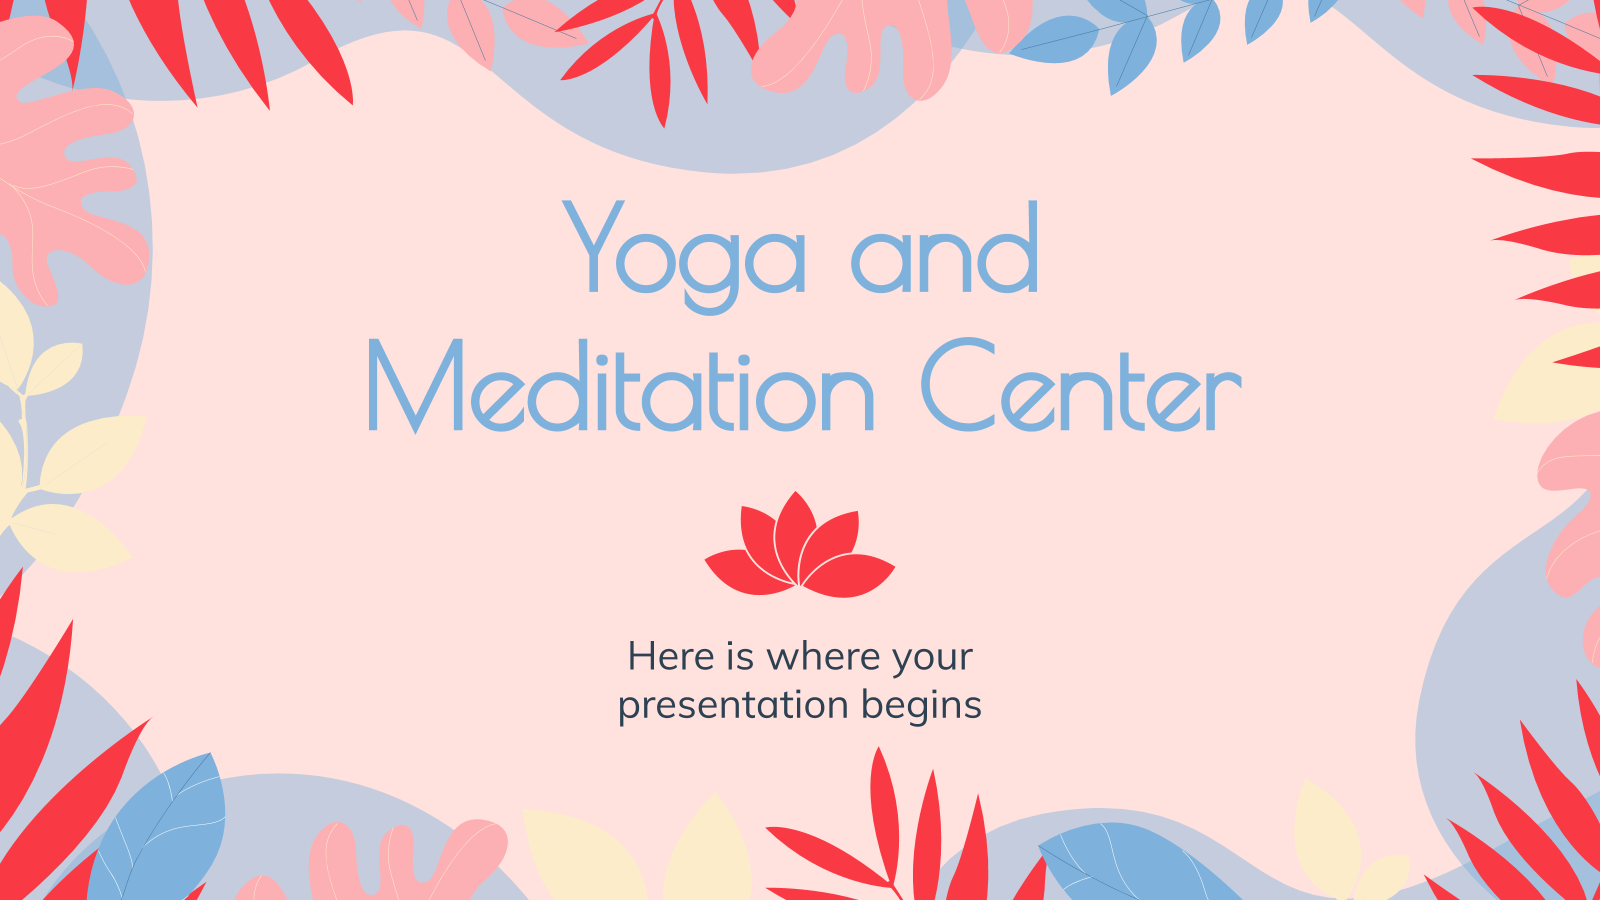 Yoga and Meditation Center presentation template